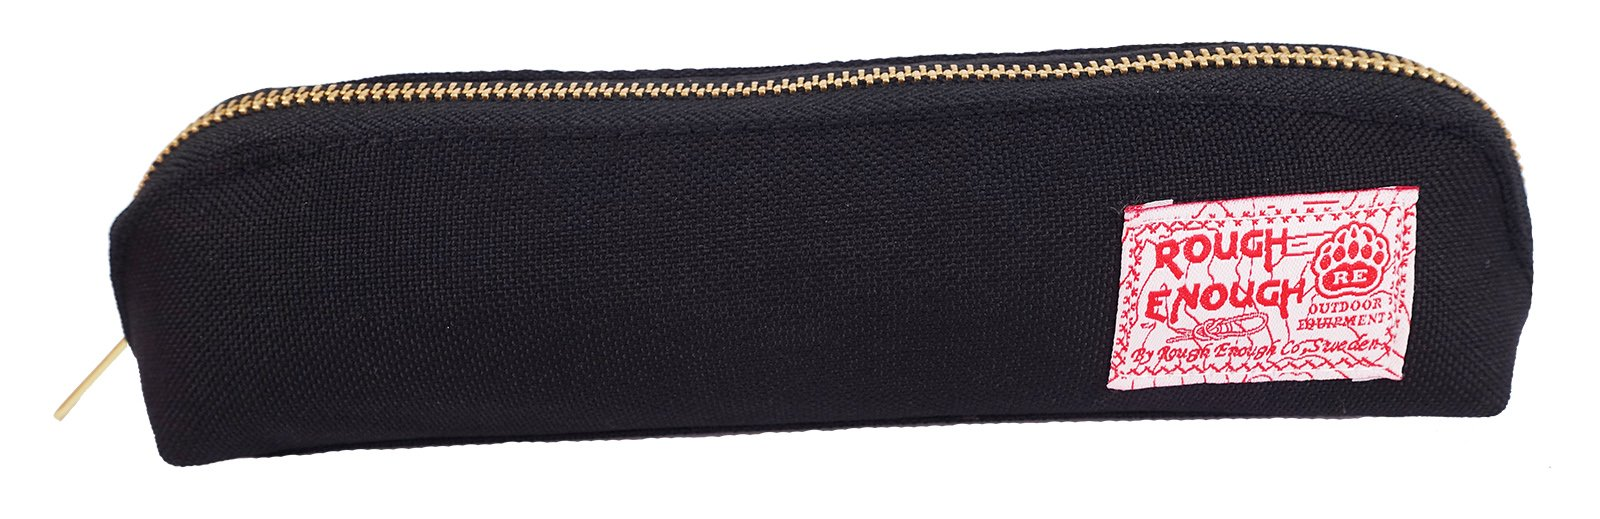 Rough Enough Multi-purpose CORDURA Polyester Long Slim Classic Portable Pencil Case Pouch Holder Organizer with YKK Gold Zipper for Stationary Cosmetics Accessories Kids Boys Students at Schools Black by ROUGH ENOUGH (Image #2)